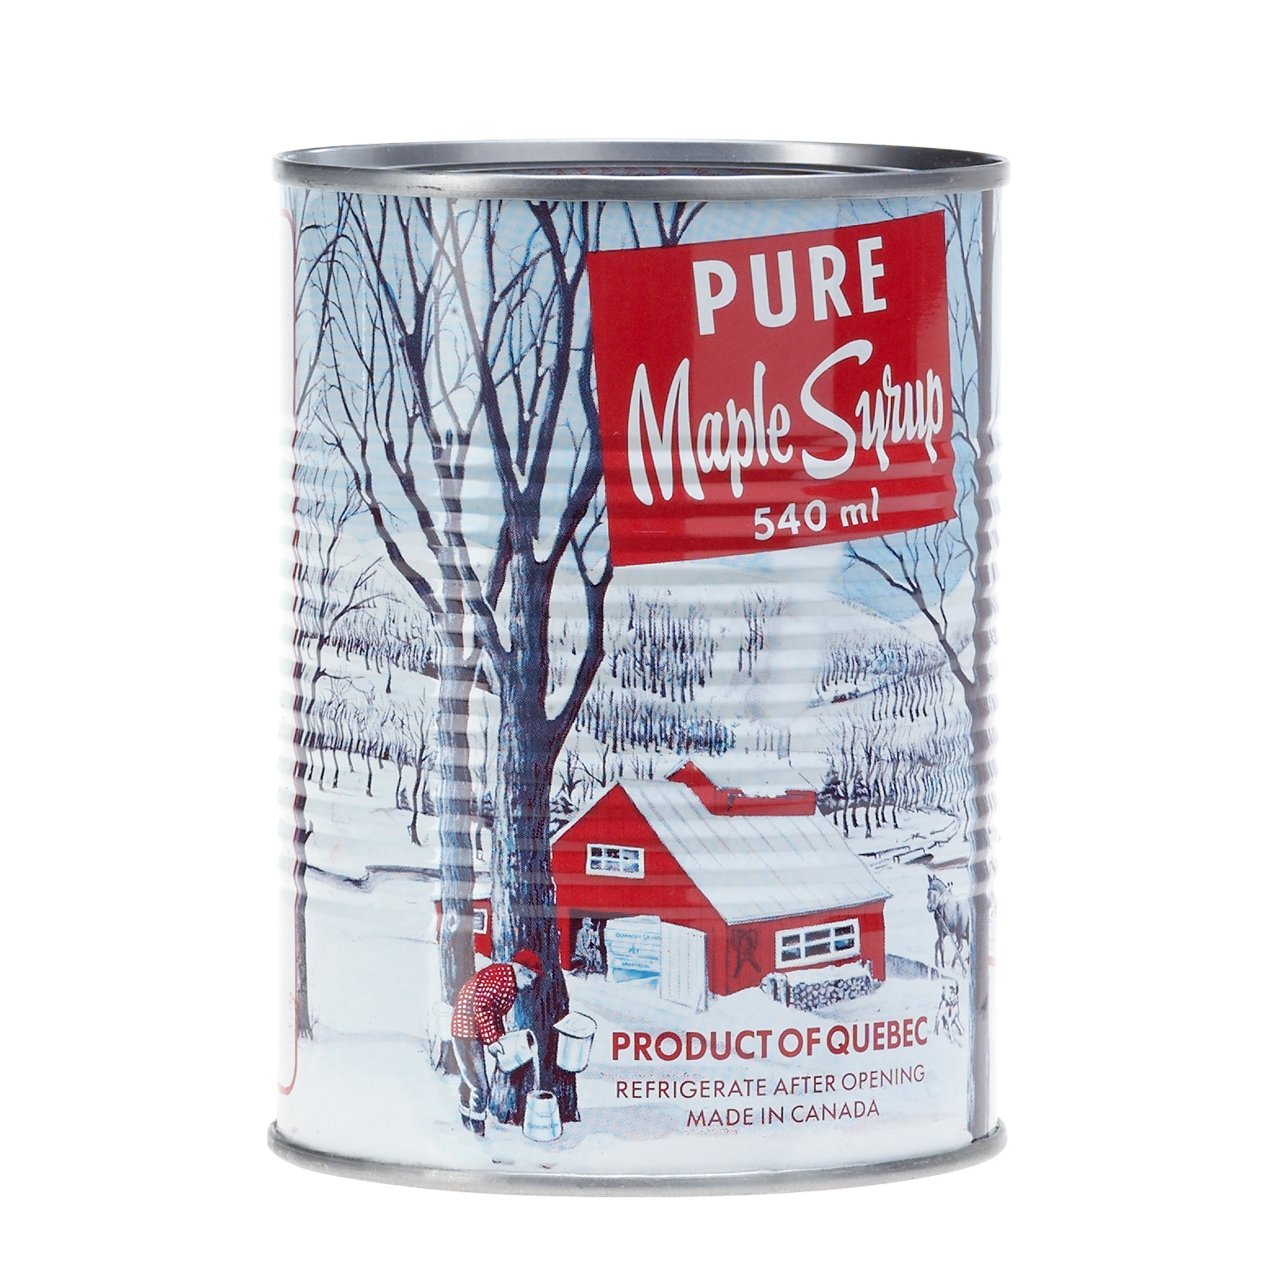 maple-syrup-can-13078.1484096125.1280.1280-04815.1484321976.png